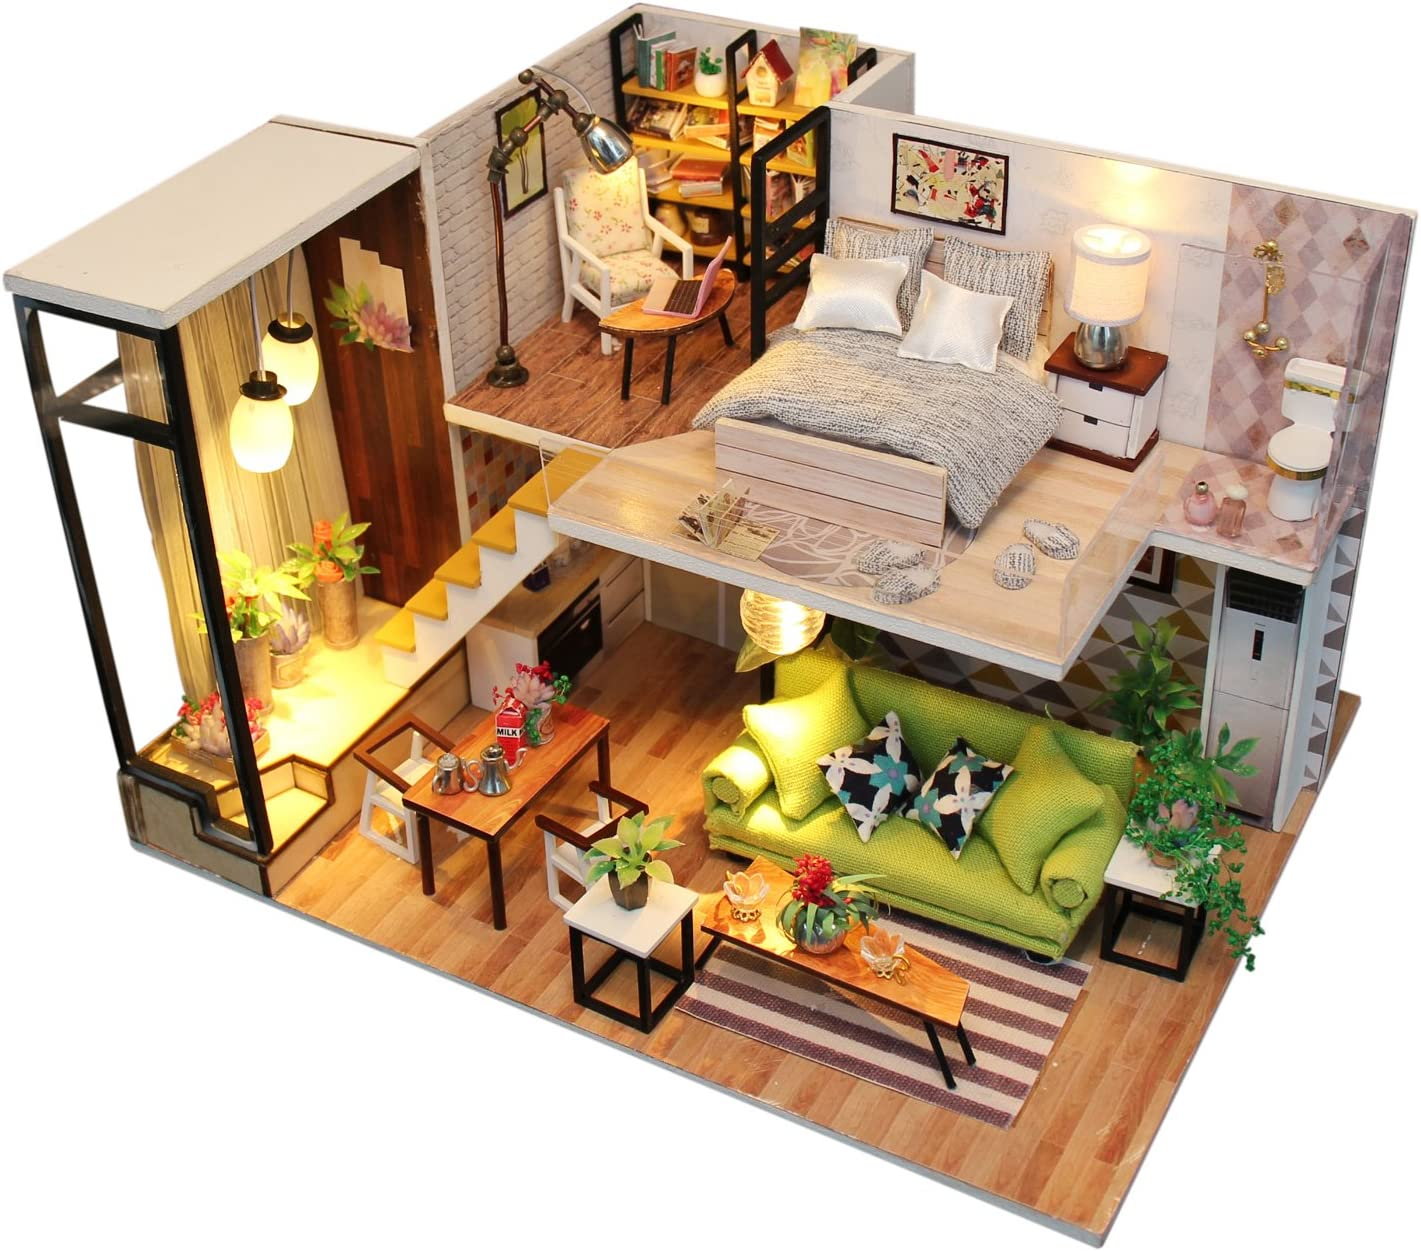 Flever Dollhouse Miniature DIY Music House Kit Manual Creative with Furniture for Romantic Artwork Gift (Romantic Nordic)